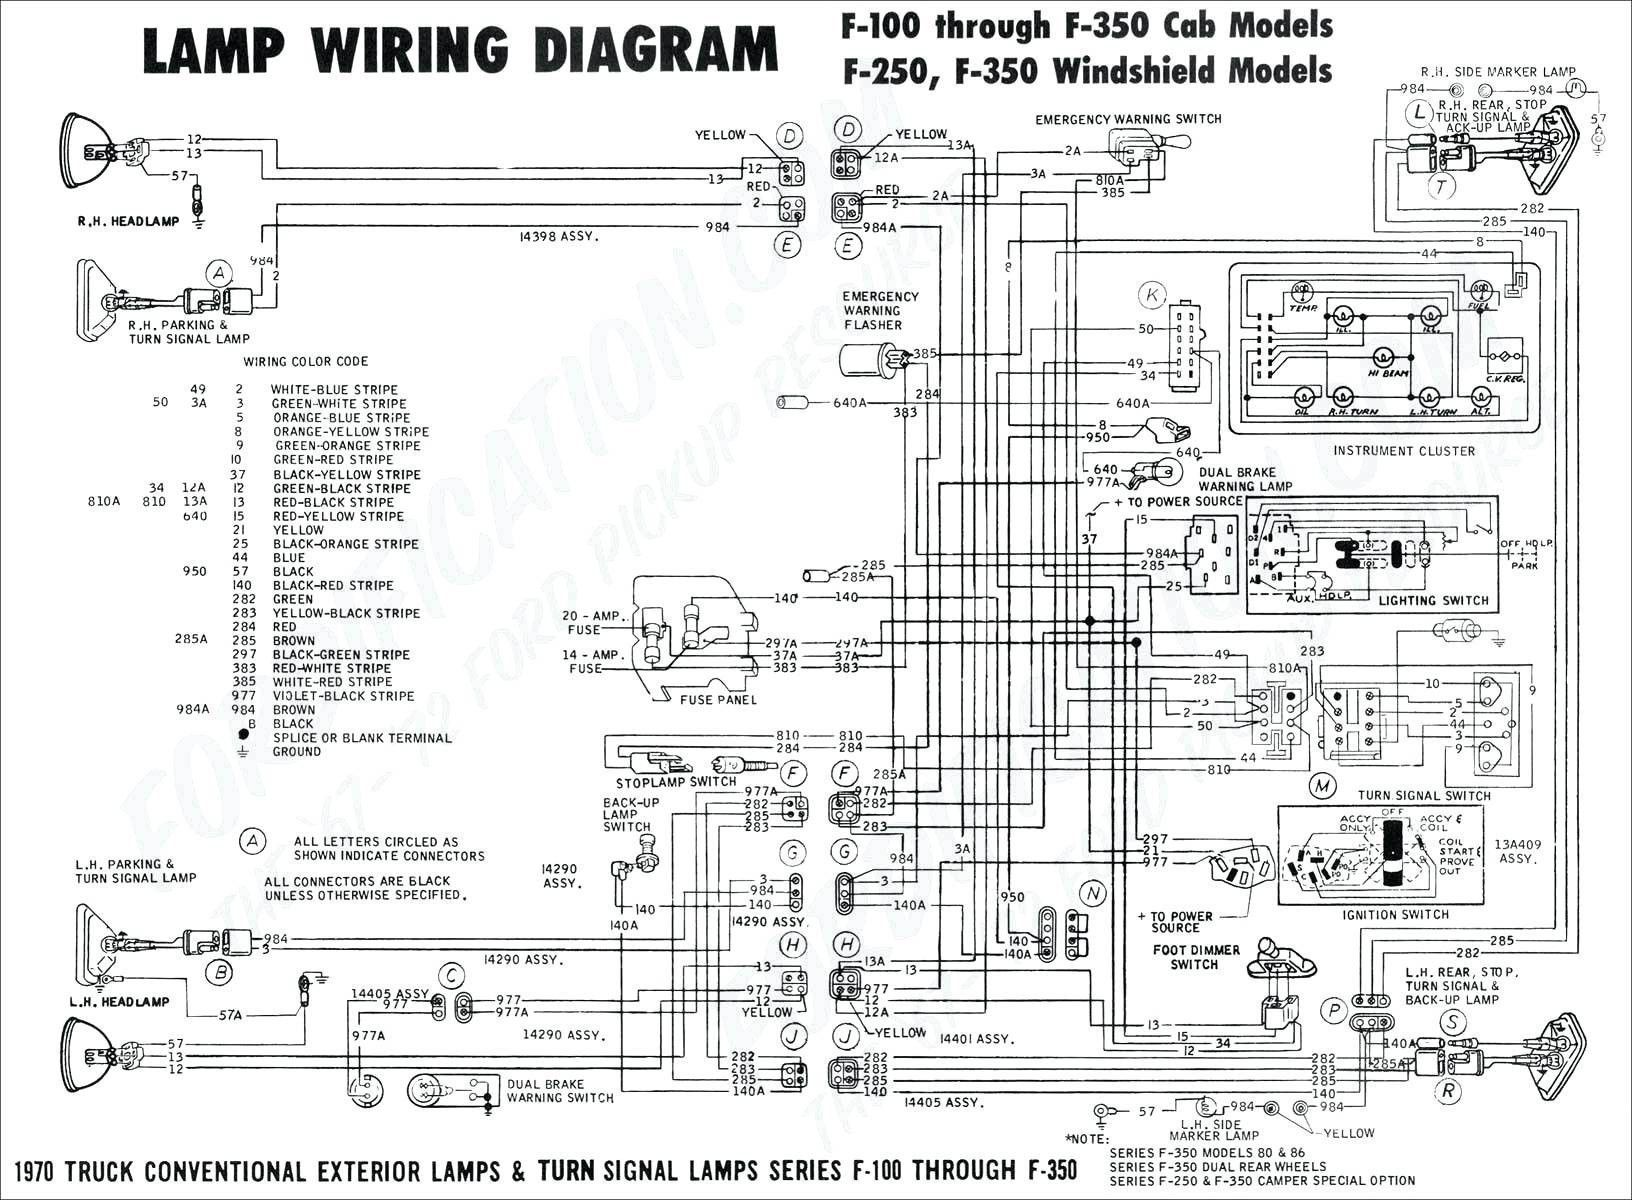 2007 Dodge Ram Wiring Diagram Awesome In 2020 Electrical Wiring Diagram Diagram Trailer Wiring Diagram